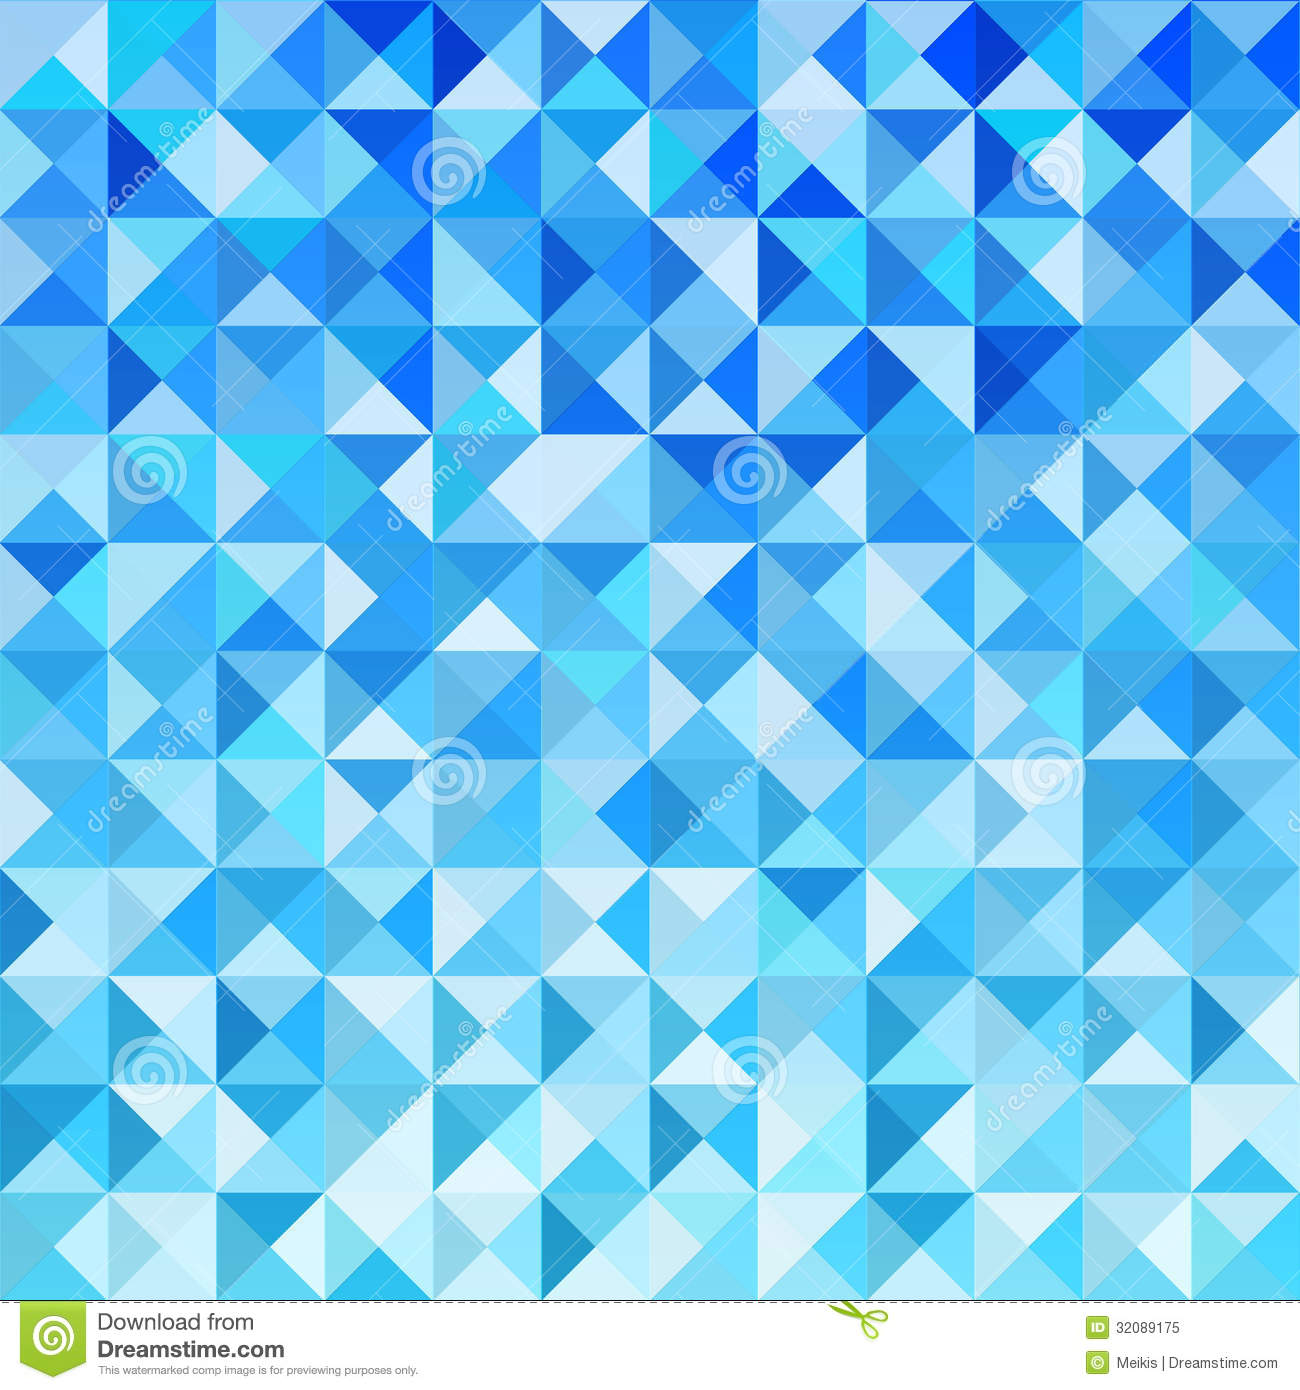 blue mosaic background stock vector illustration of pixelated 32089175 dreamstime com